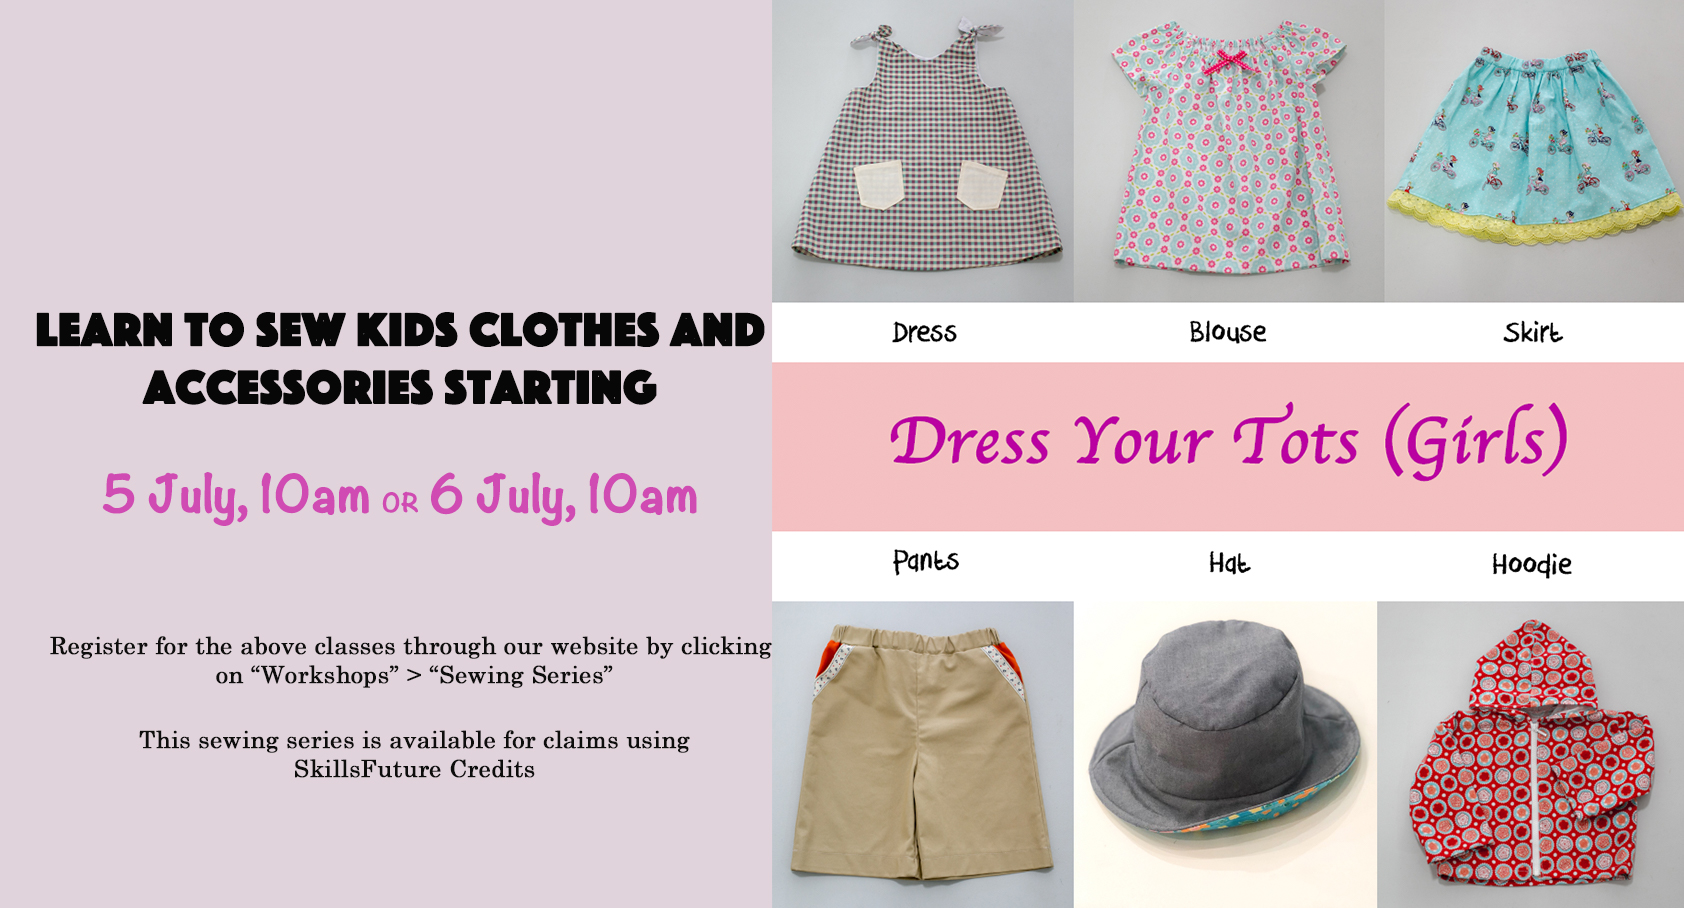 Dress Your Tots